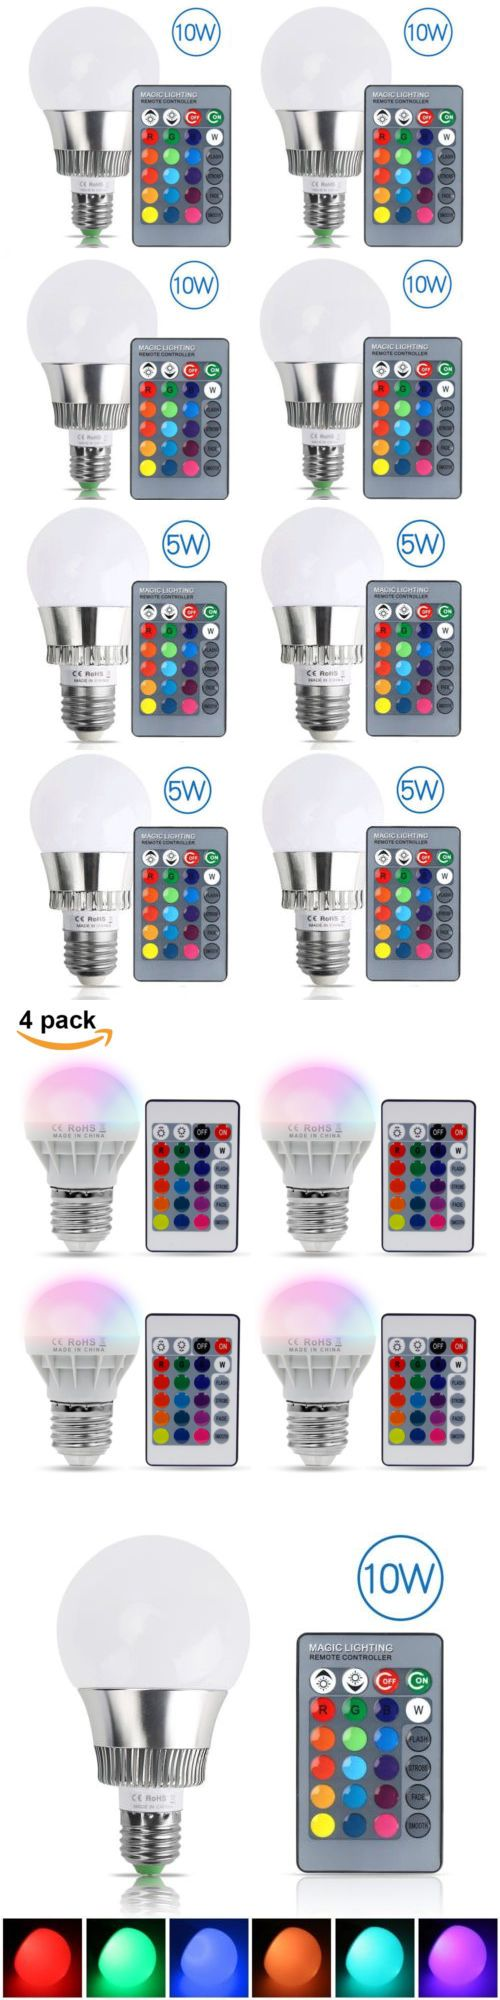 This controller lets you control 4 different branches of lights - Light Bulbs 20706 3w 5w 10w E27 Rgb Led Light Bulb Magic Lamp 16 Color